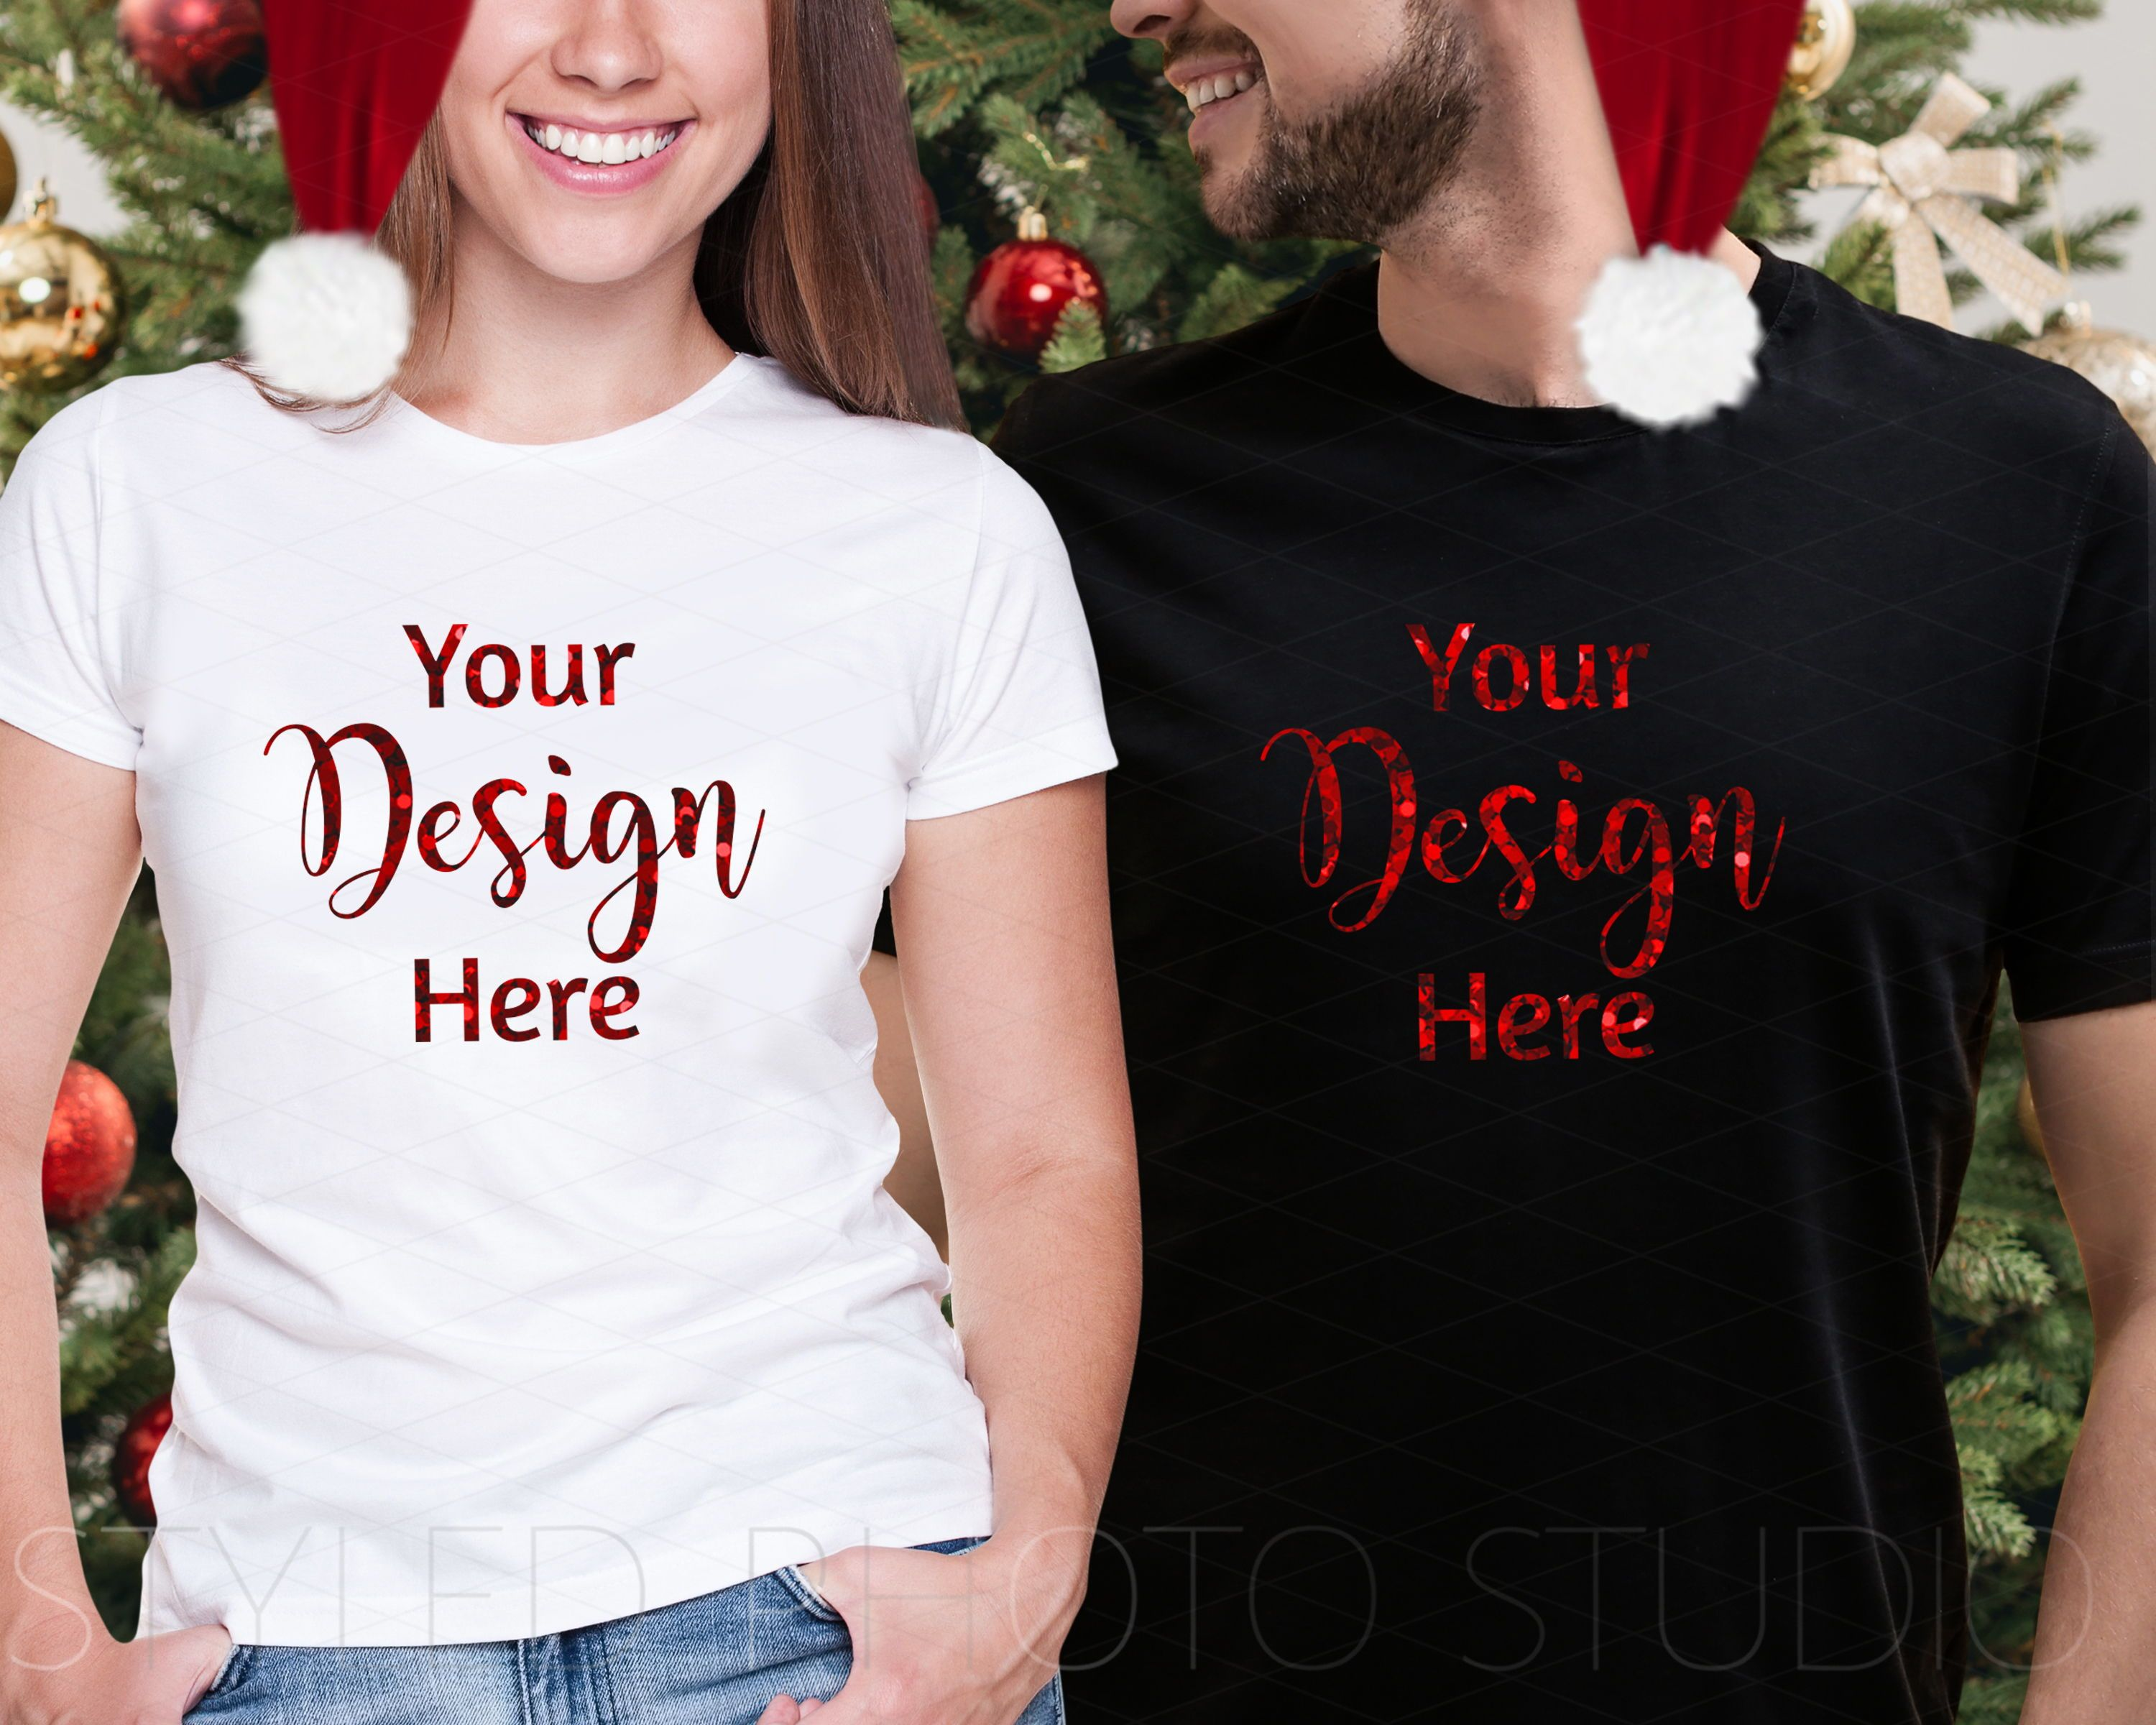 Download Tshirt Mockup Black And White For Him And Her Shirt Mockup Digital Design T Shirts For Women